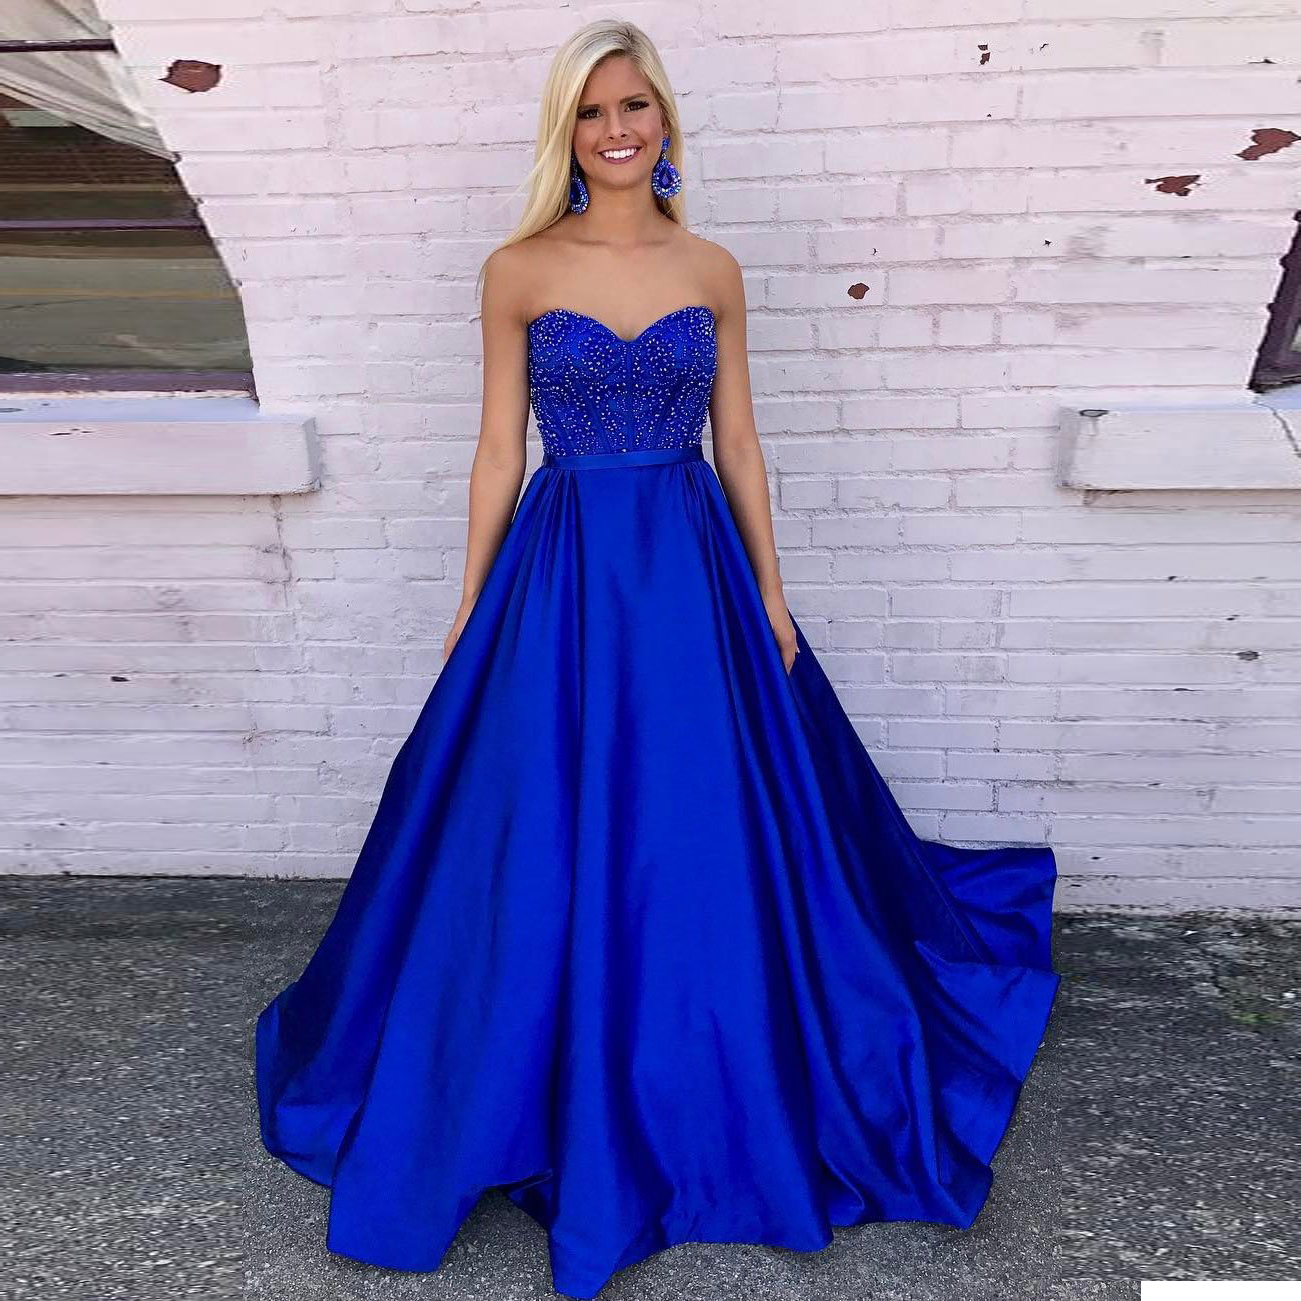 huge discount classic style of 2019 professional Elegant Sweetheart Royal Blue Prom Dress,A Line Formal Gown With Beaded  Bodice from dresschic